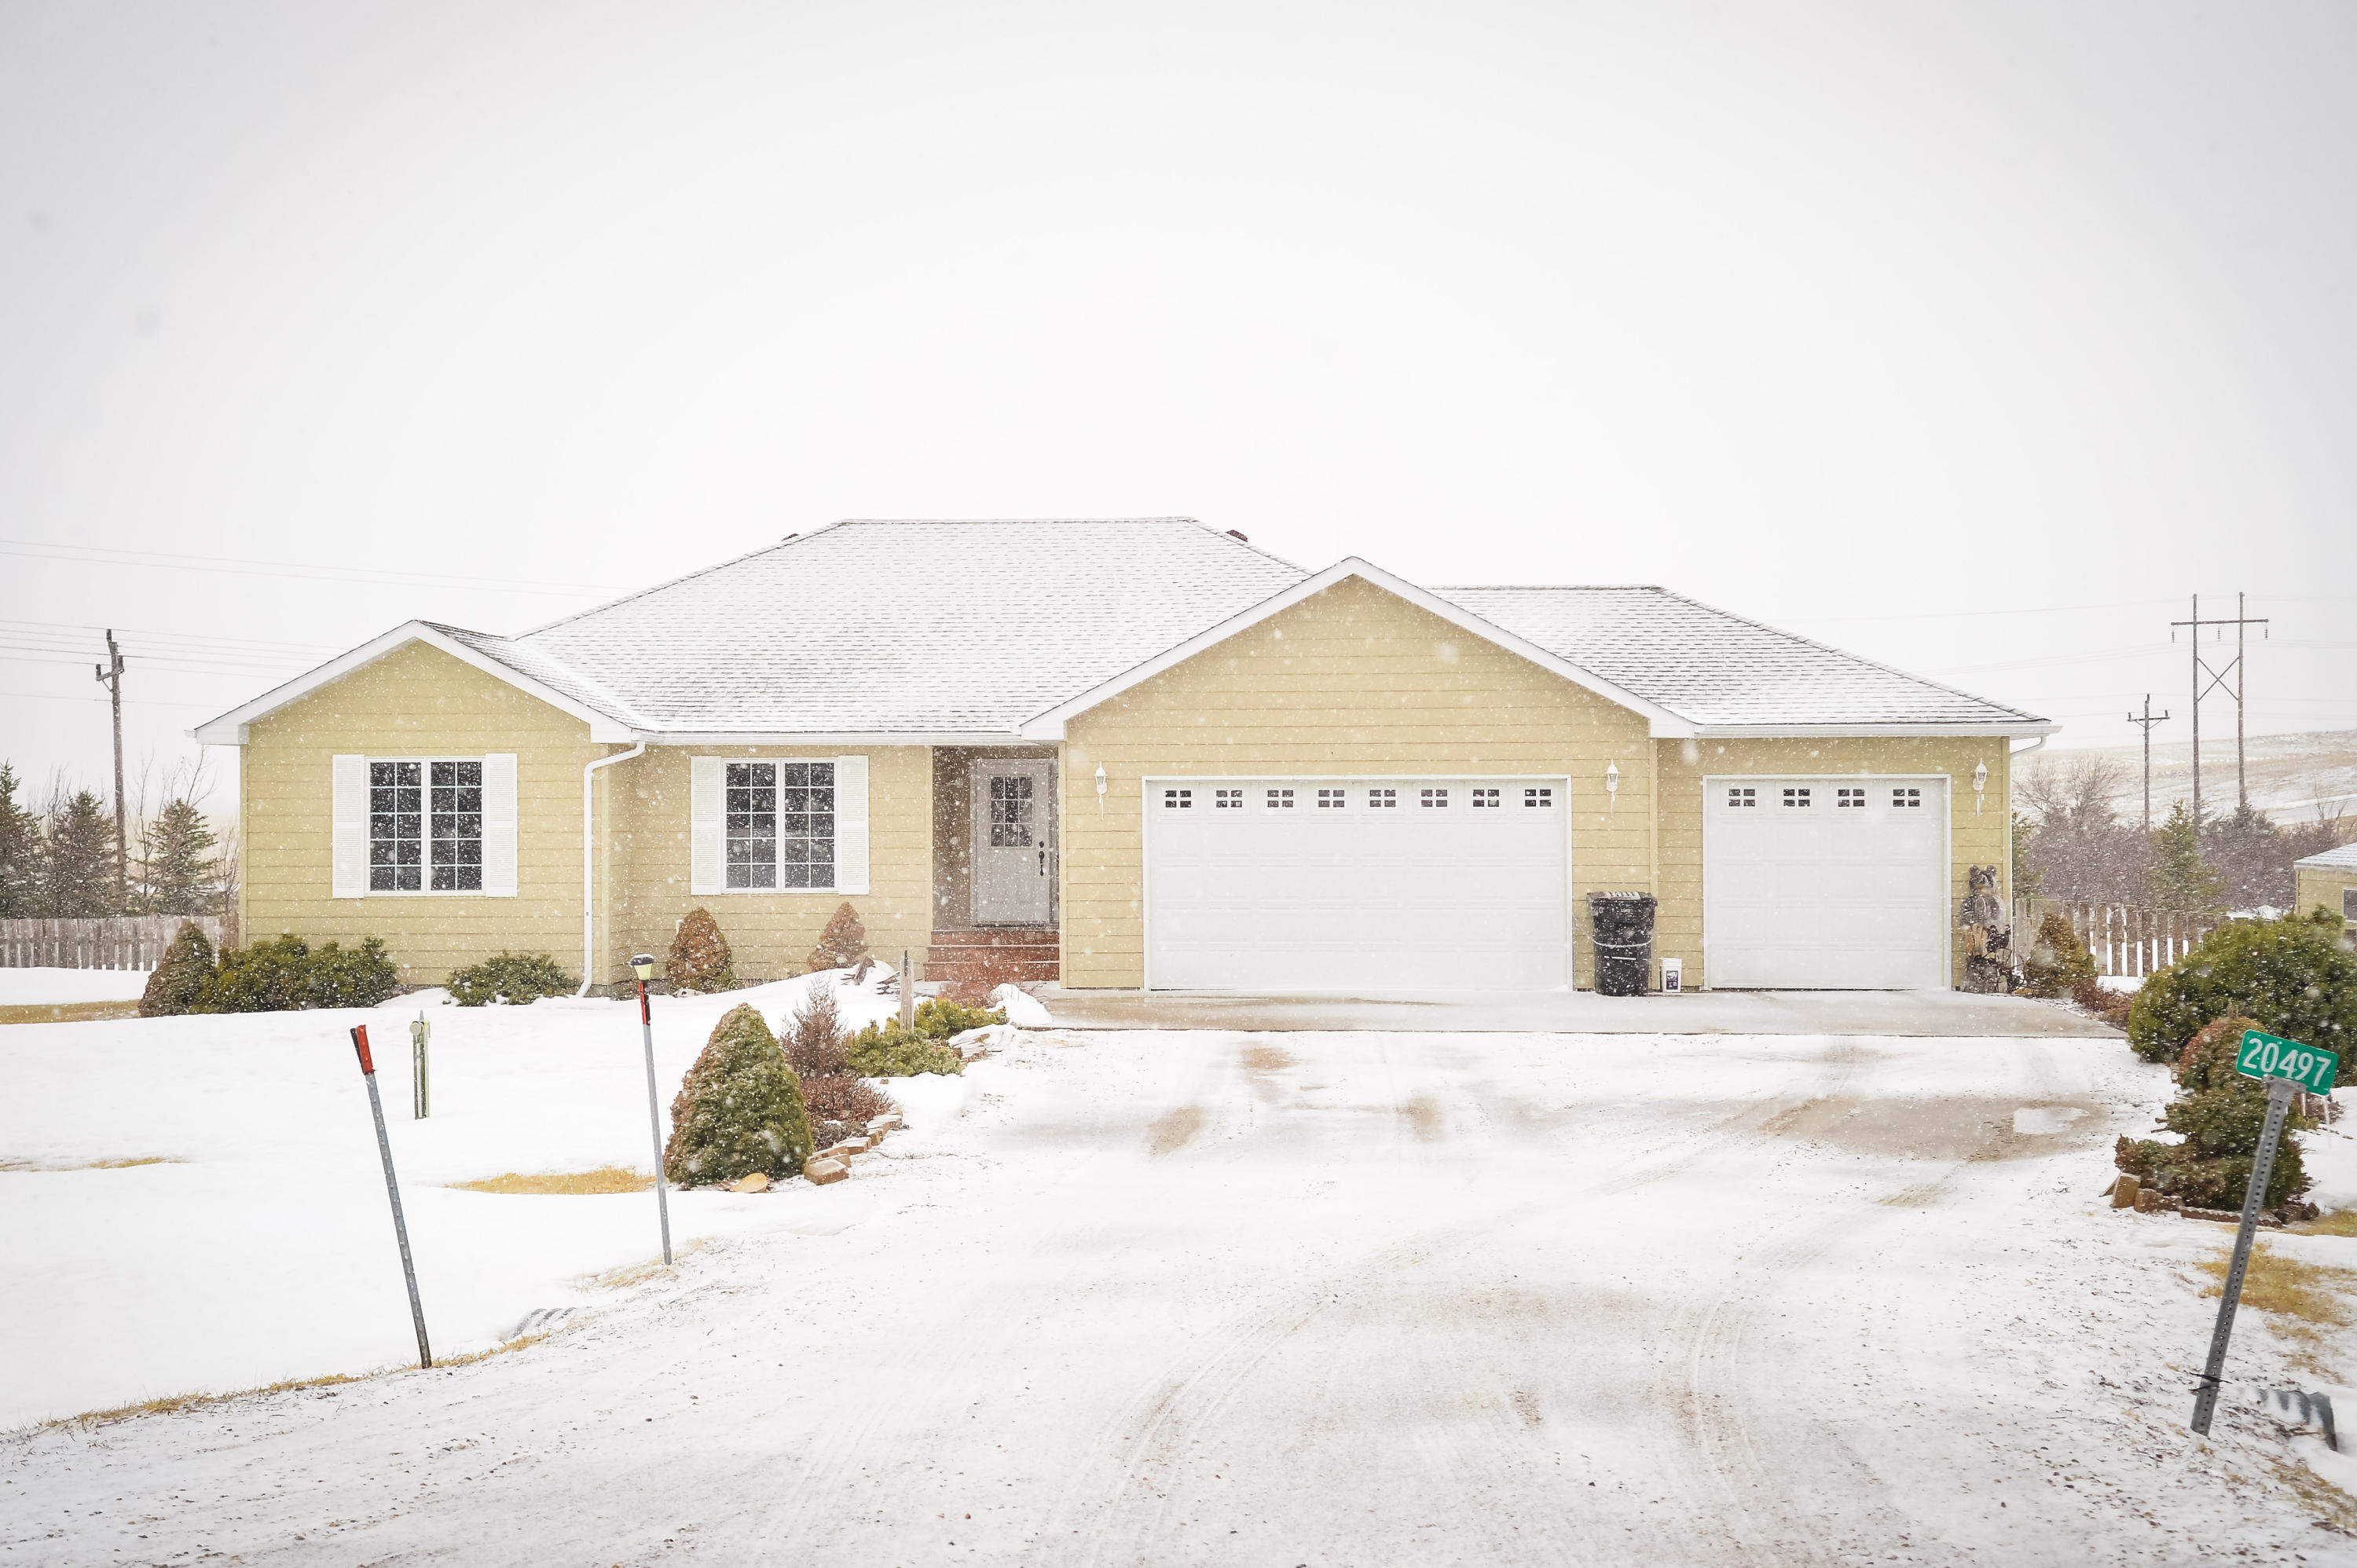 20497 Homestead Place, Pierre, SD 57501 (MLS# 18-71) | Pierre/Fort ...